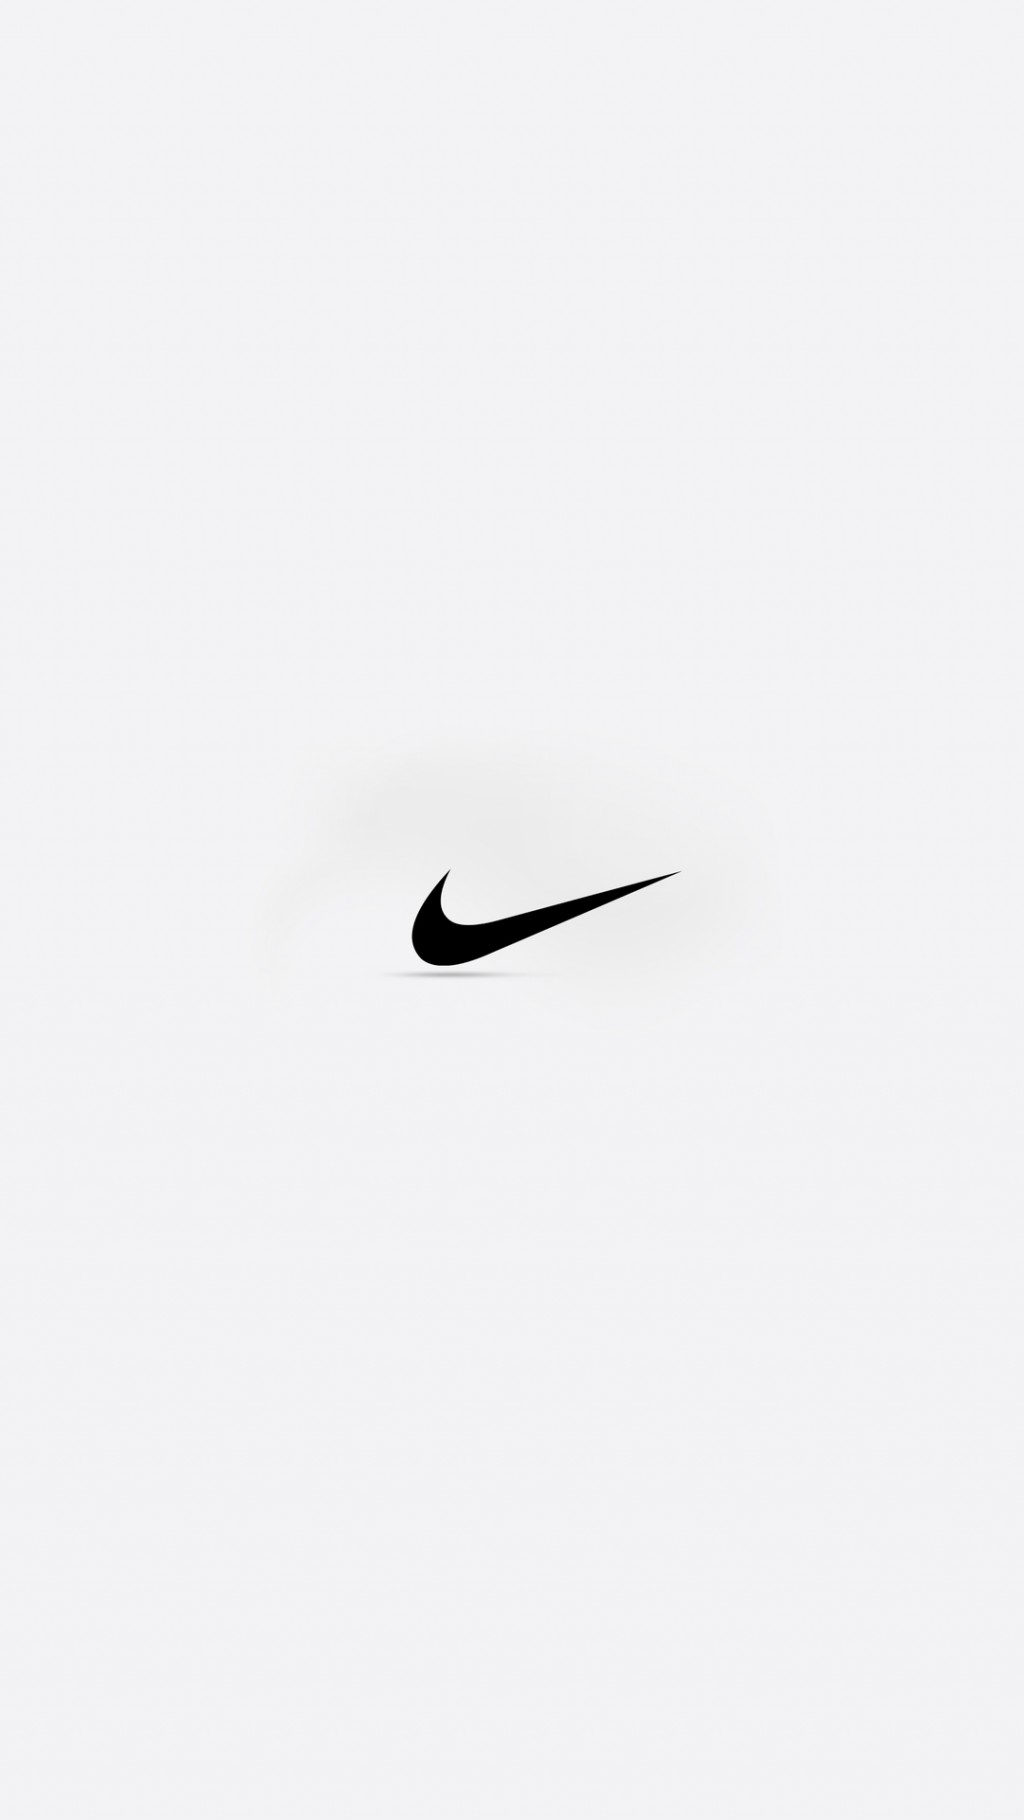 Wallpaper Nike photos of Nike iPhone Wallpaper by HD Wallpapers 1024x1820